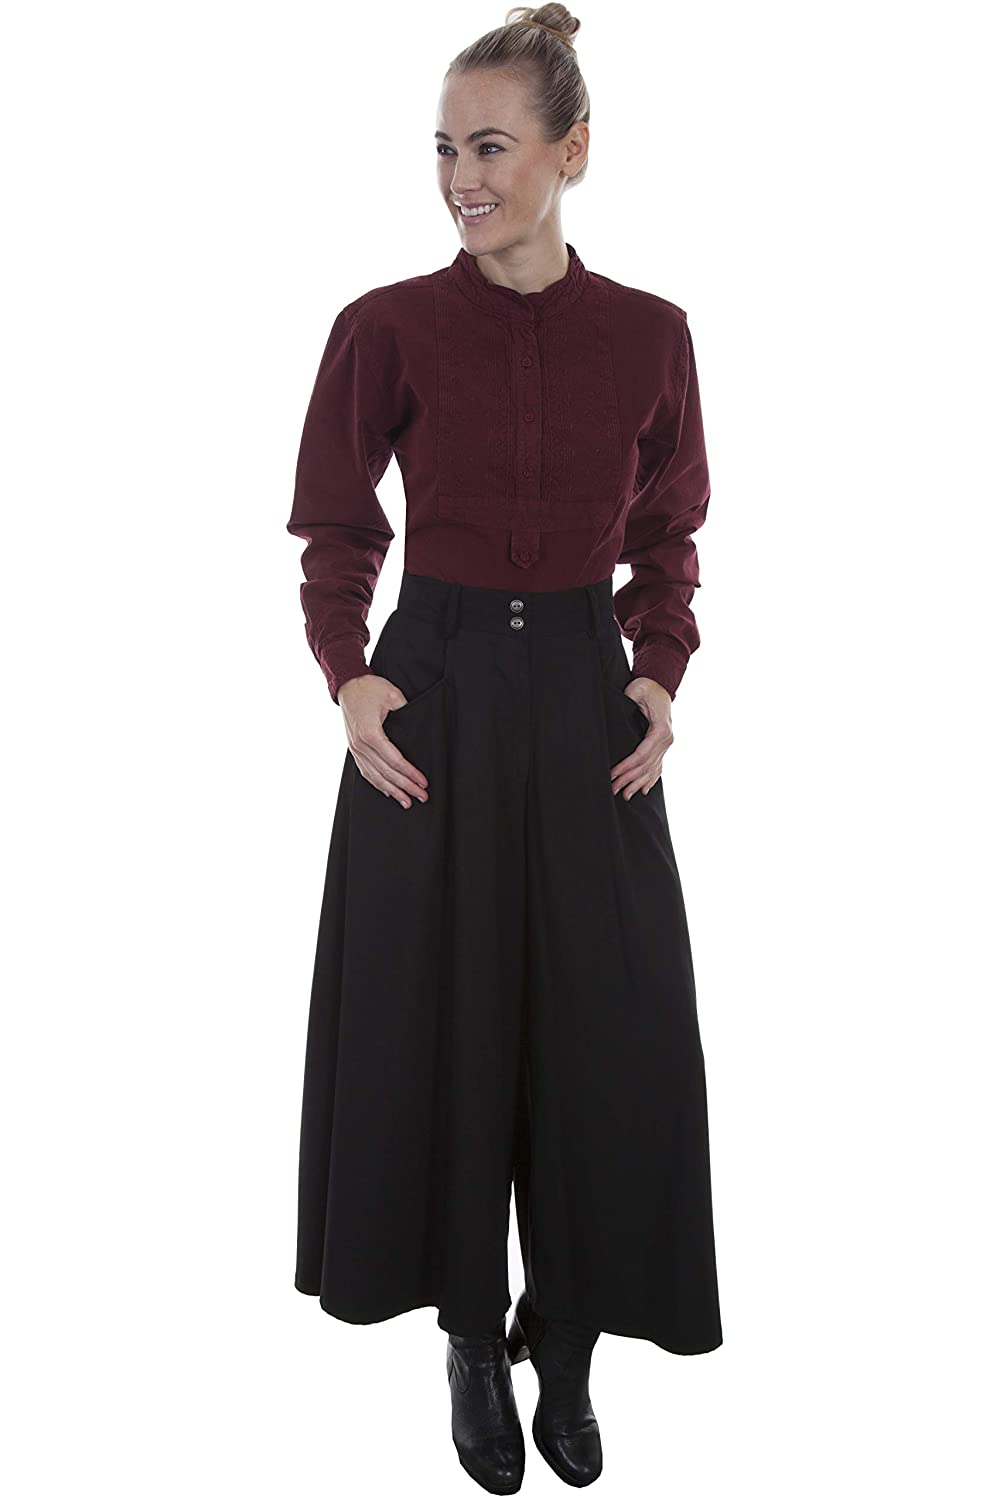 Victorian Clothing, Costumes & 1800s Fashion Scully Womens Sueded Riding Skirt  AT vintagedancer.com